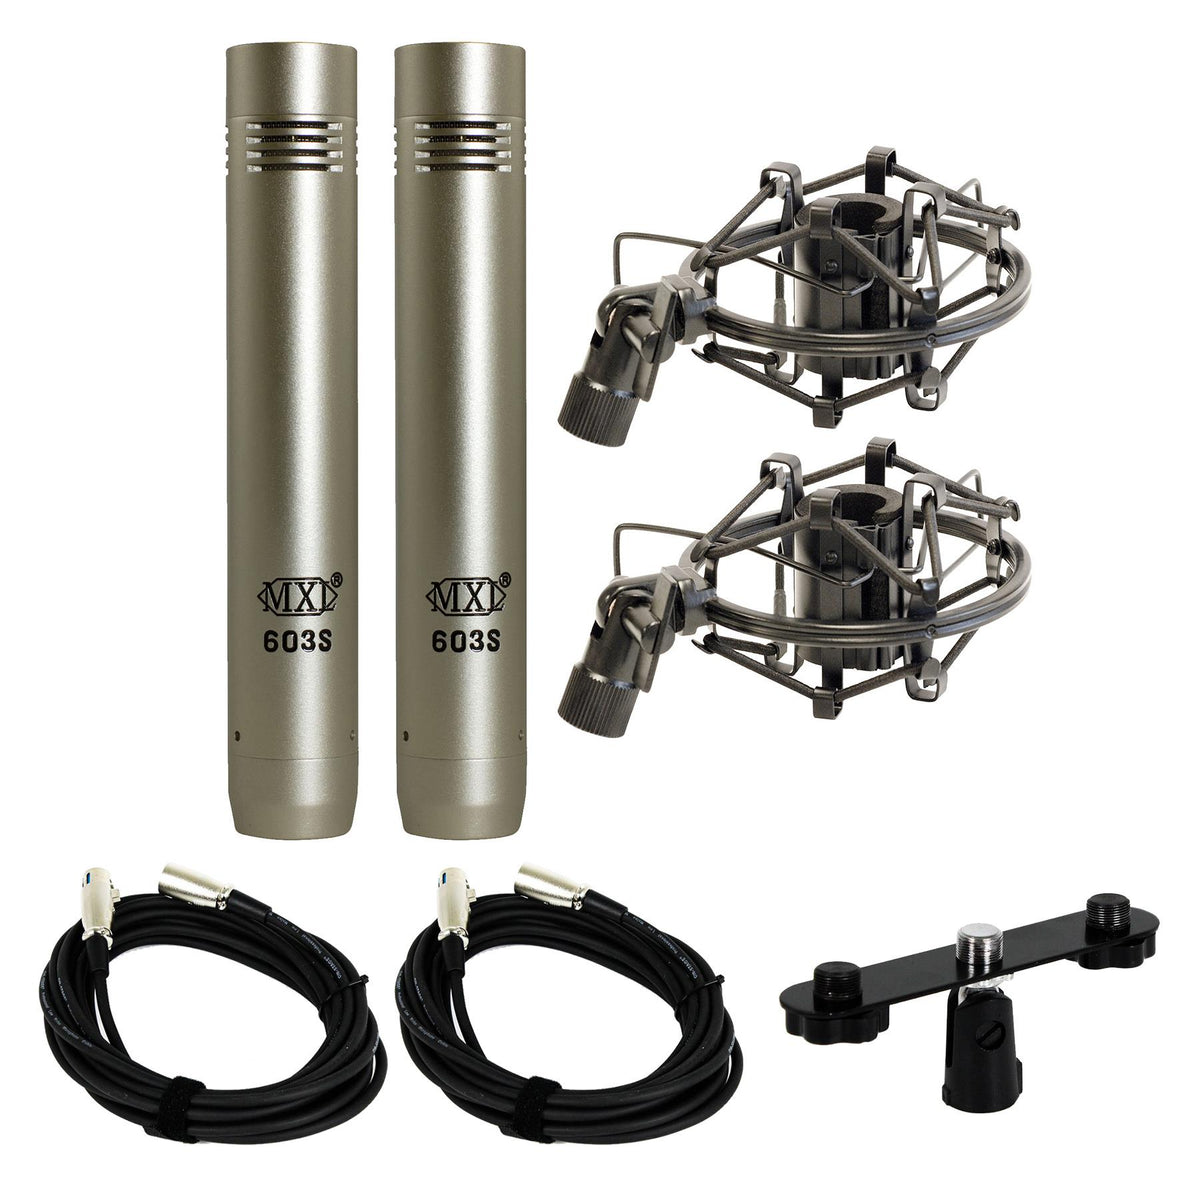 MXL 603 Microphone Stereo Pair Bundle with 2 20-foot XLR Cables & Stereo Bar